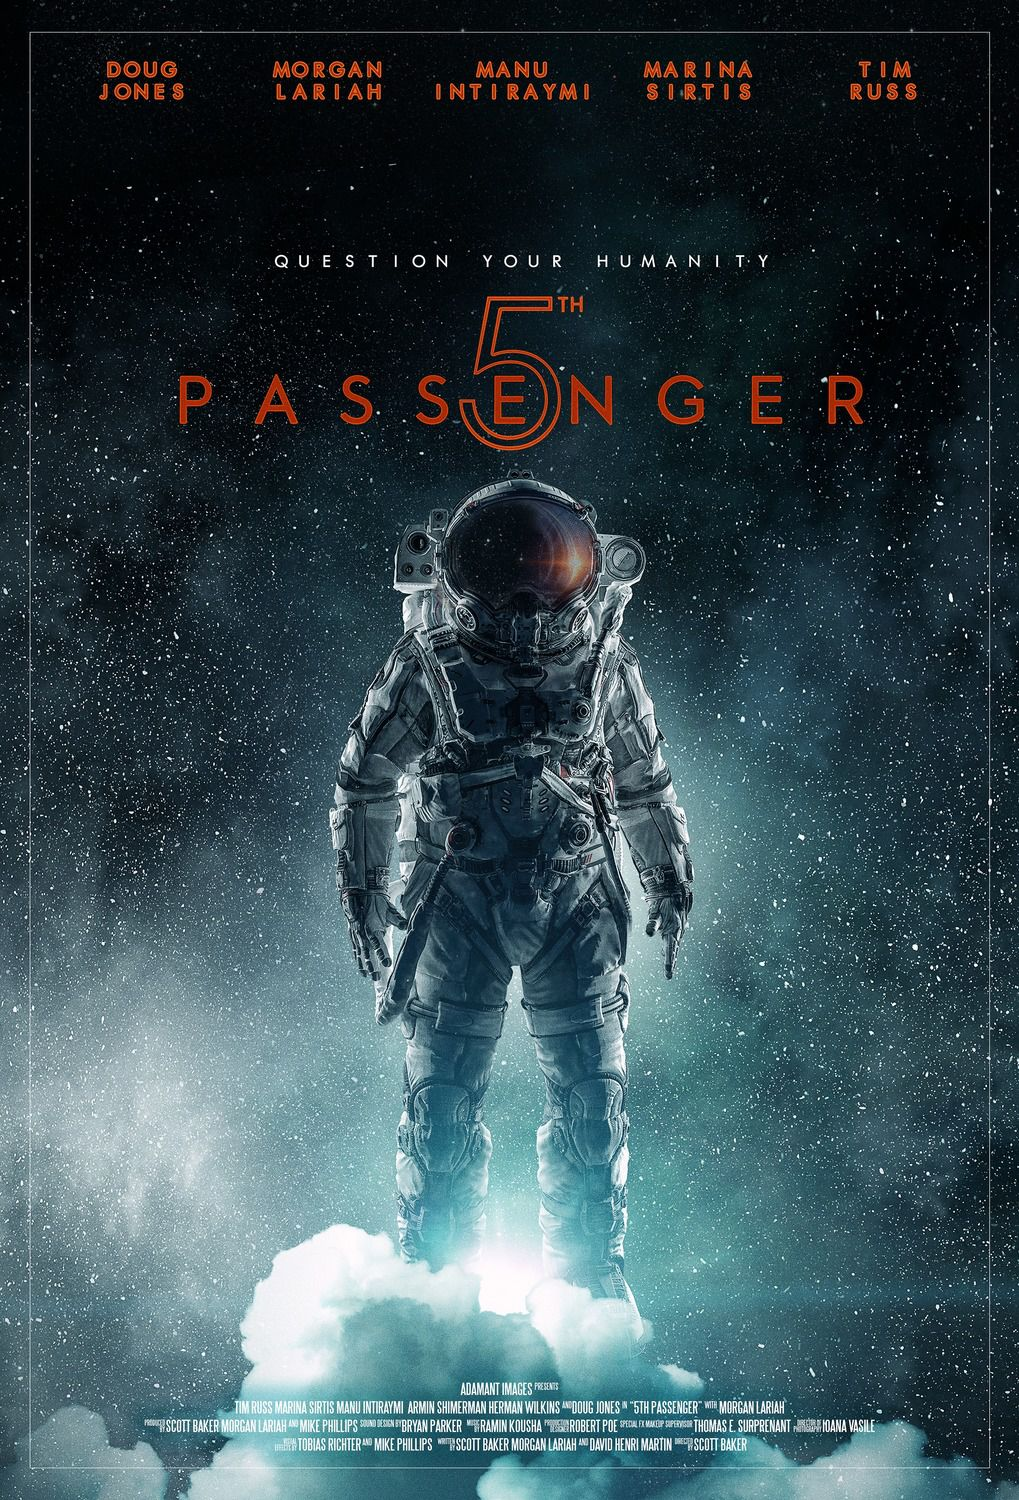 5th Passenger (2018) - scifi - Cast: Doug Jones, Morgan Lariah, Manu Intiraymi, Marina Sirtis, Tim Russ - film poster - fifth